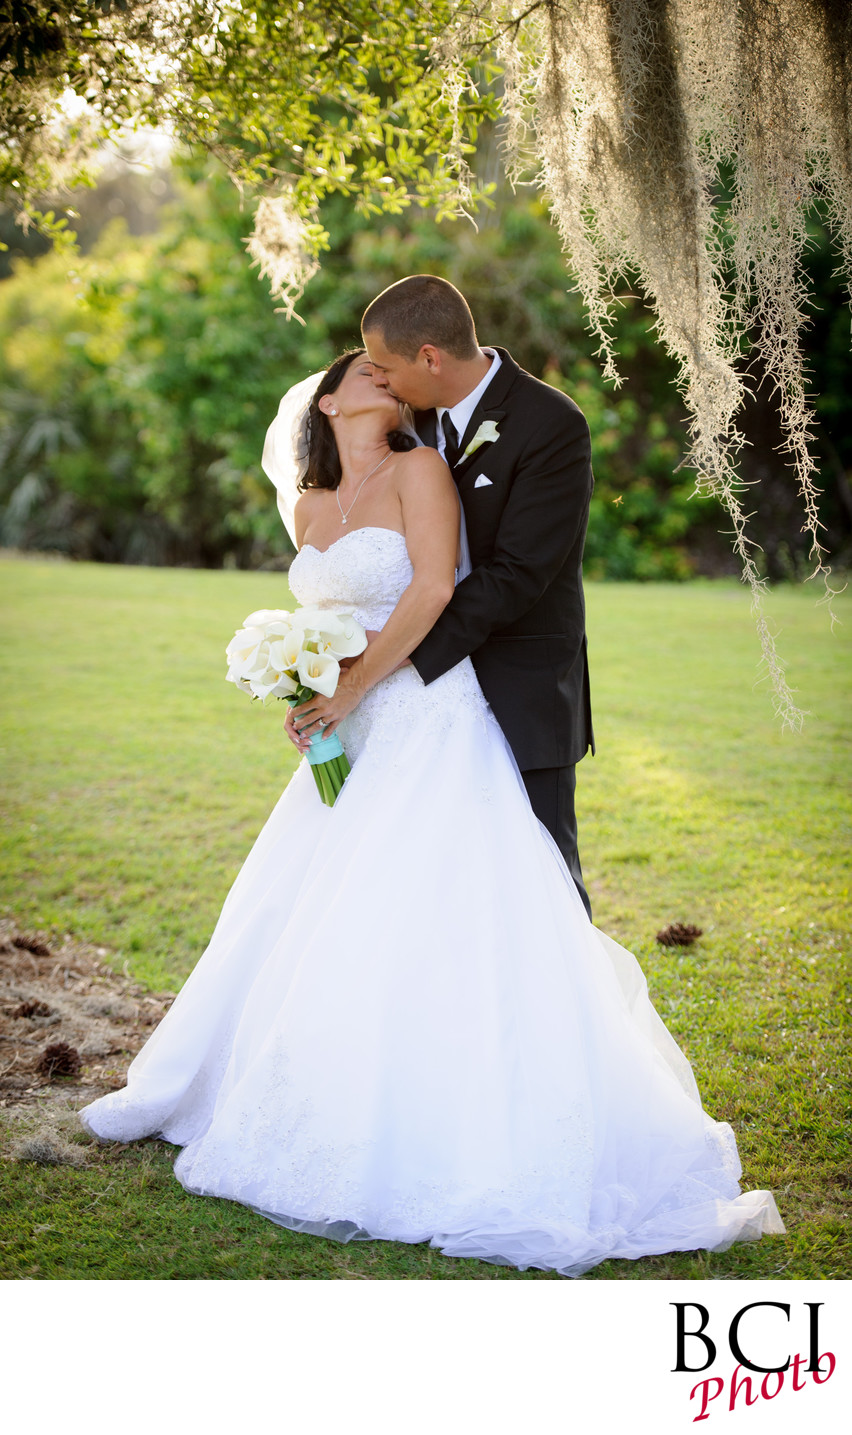 Most romantic wedding photographers near me